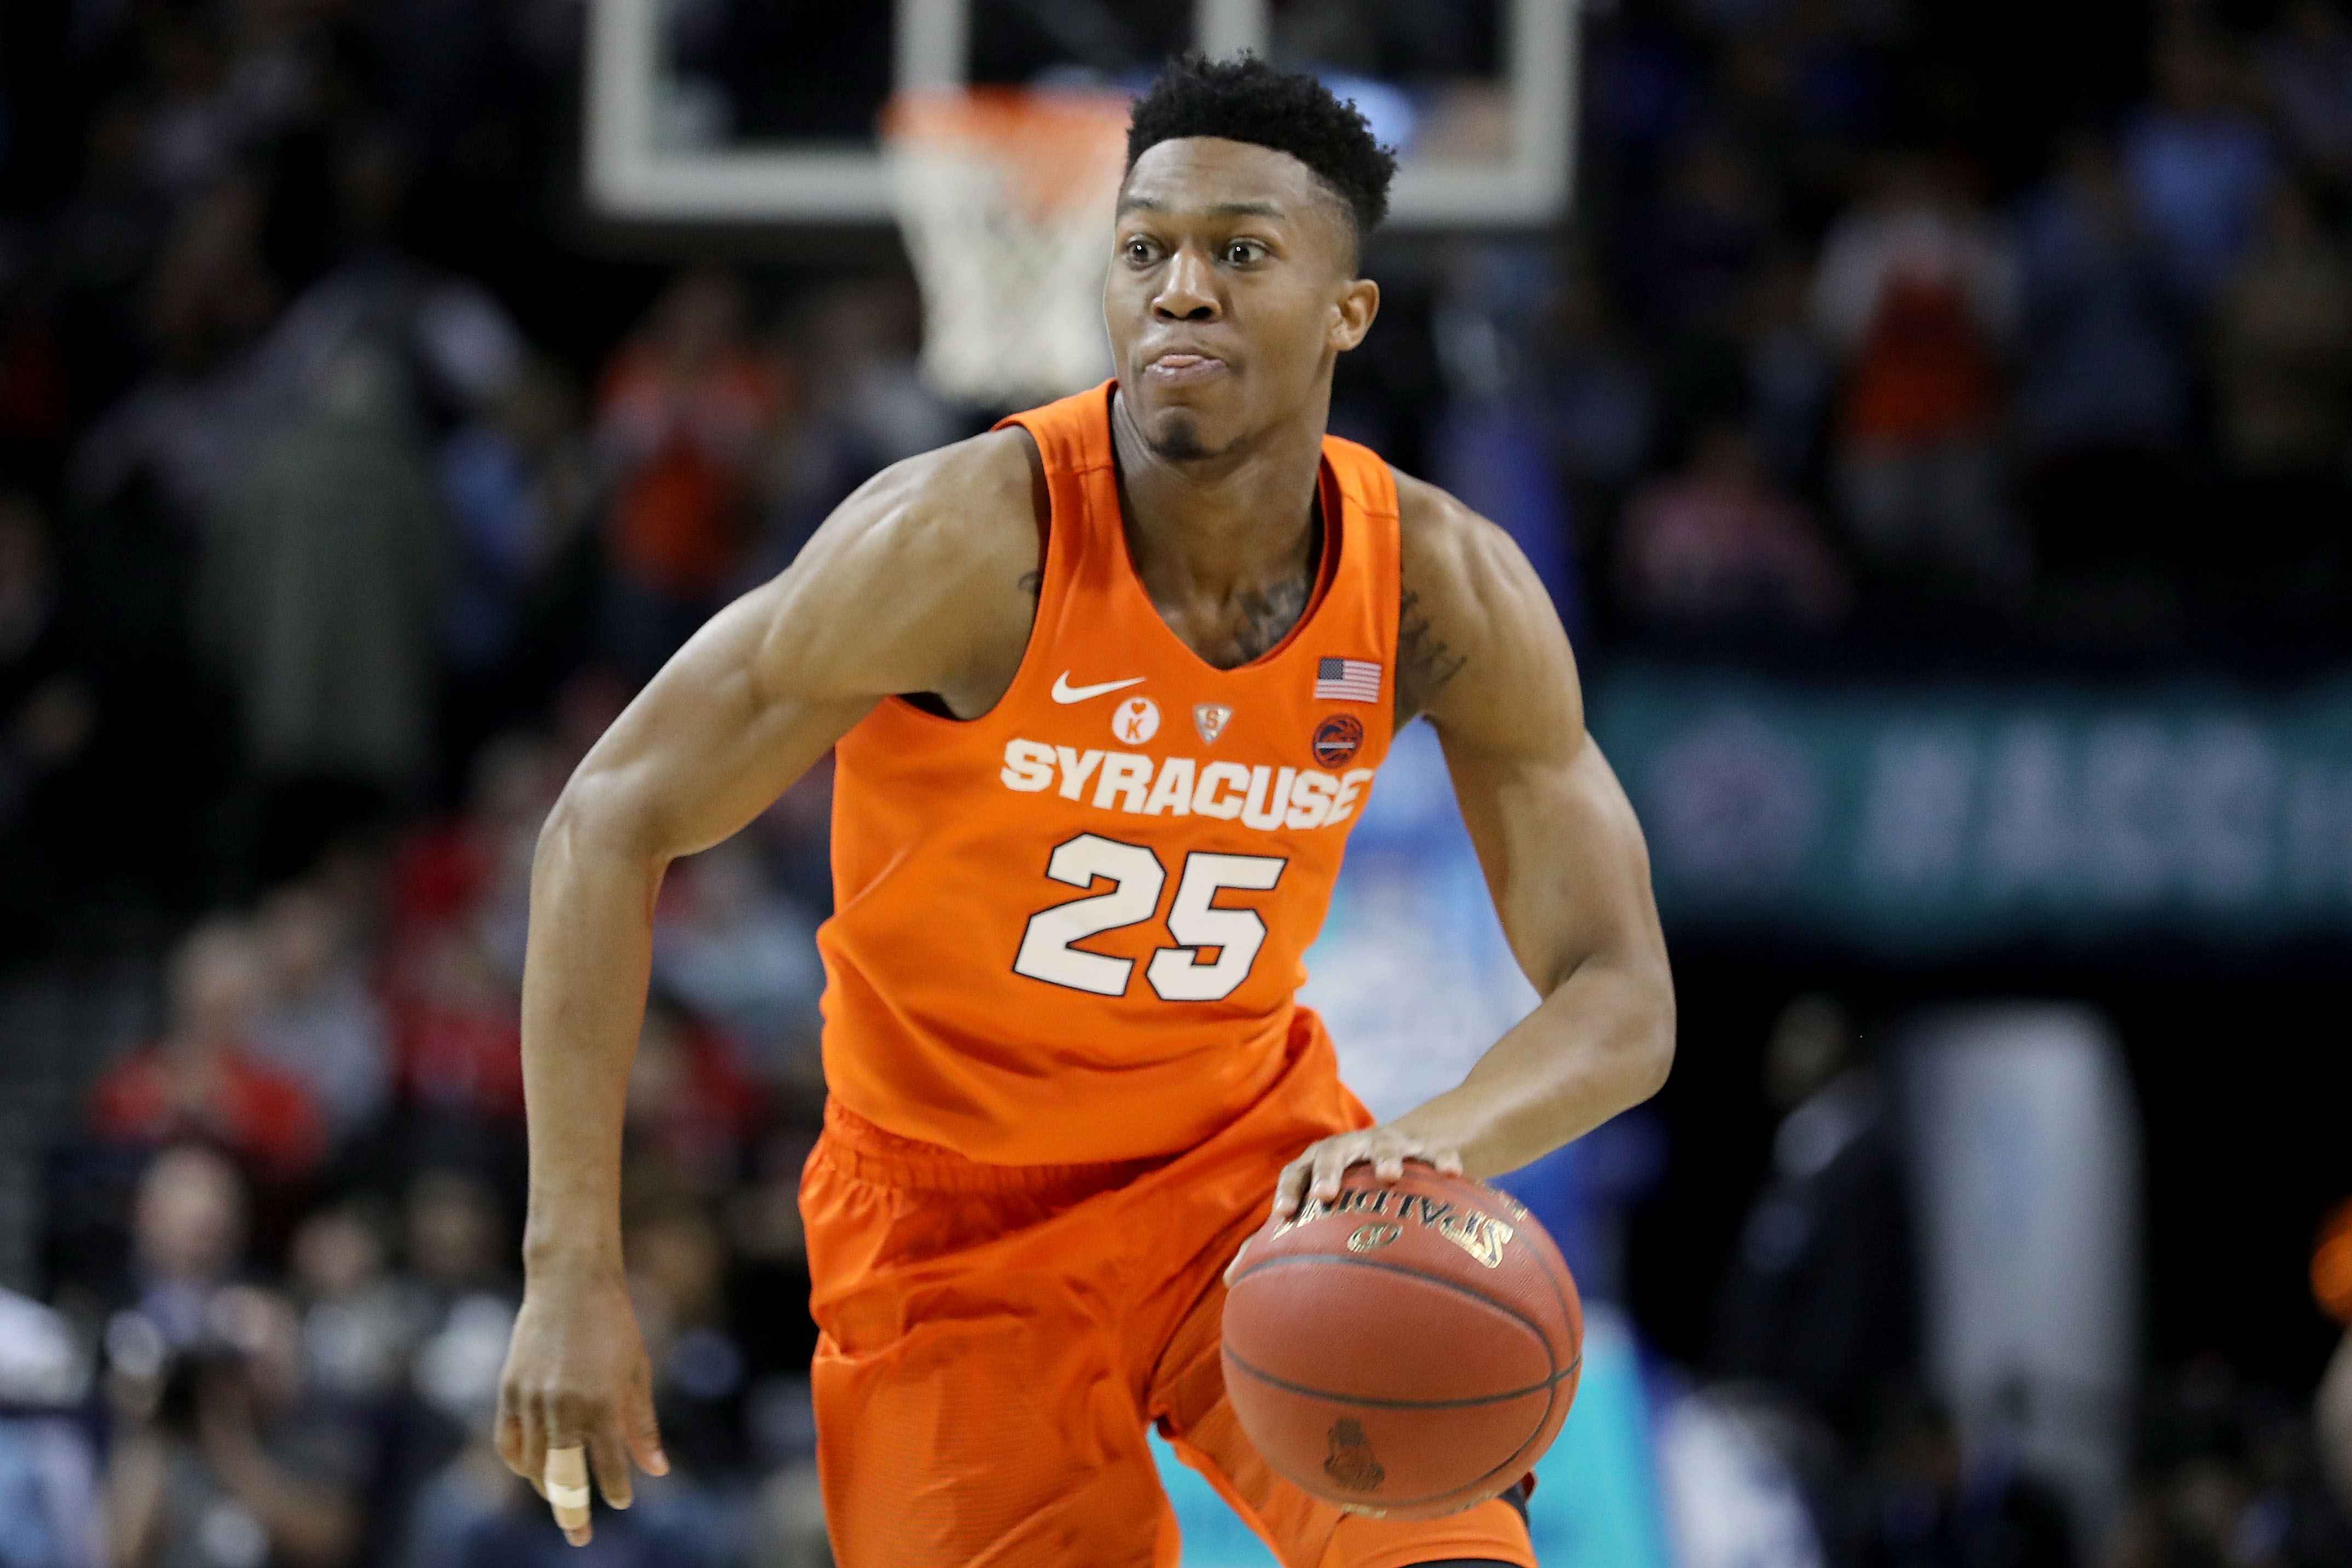 March Madness odds 2018: Wednesday First Four betting lines and trends